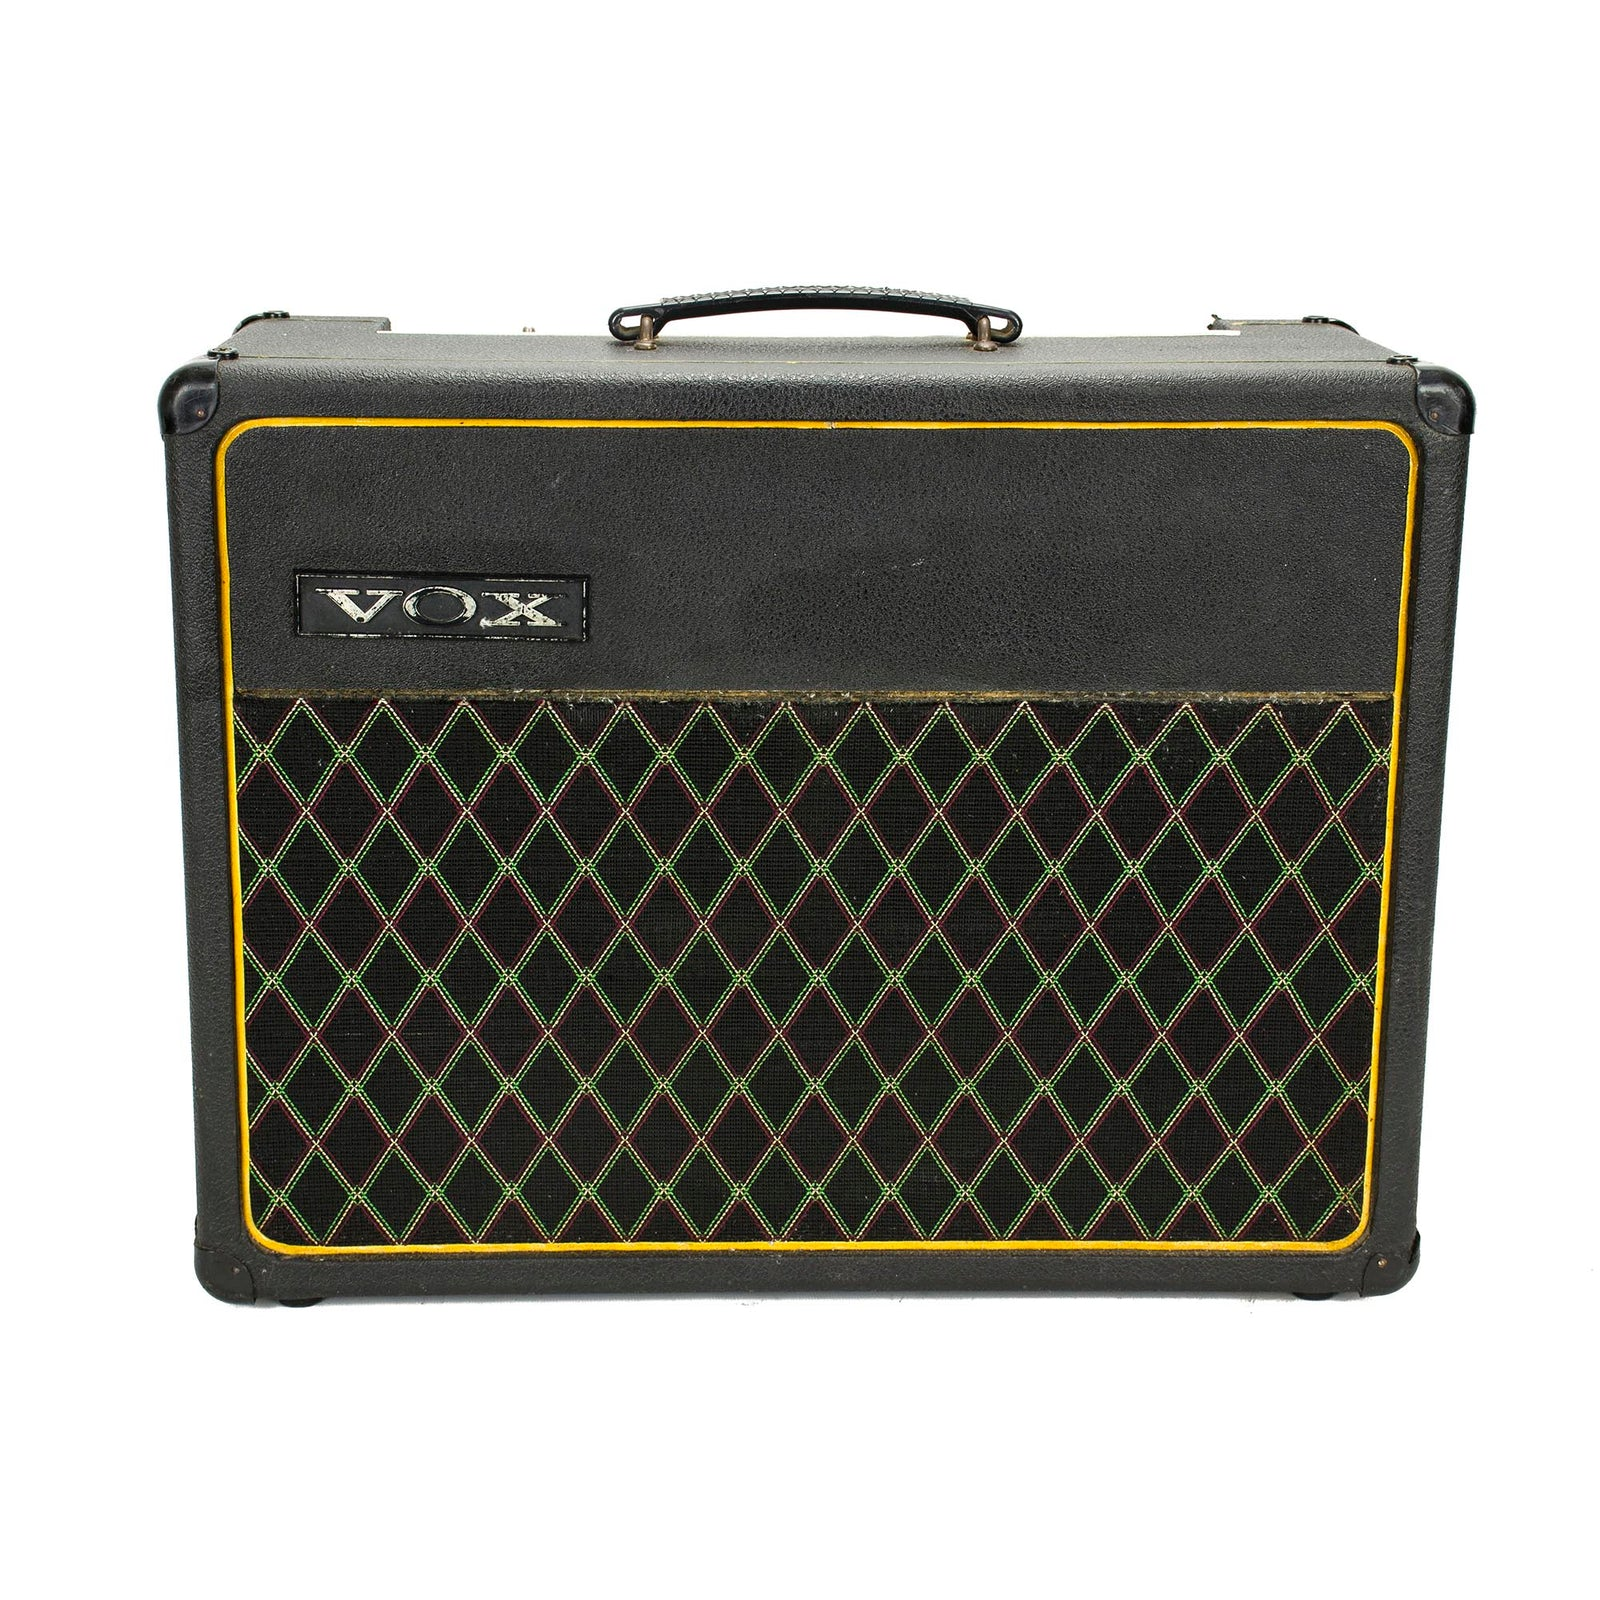 Vox V1032 67' Cambridge Reverb - Used